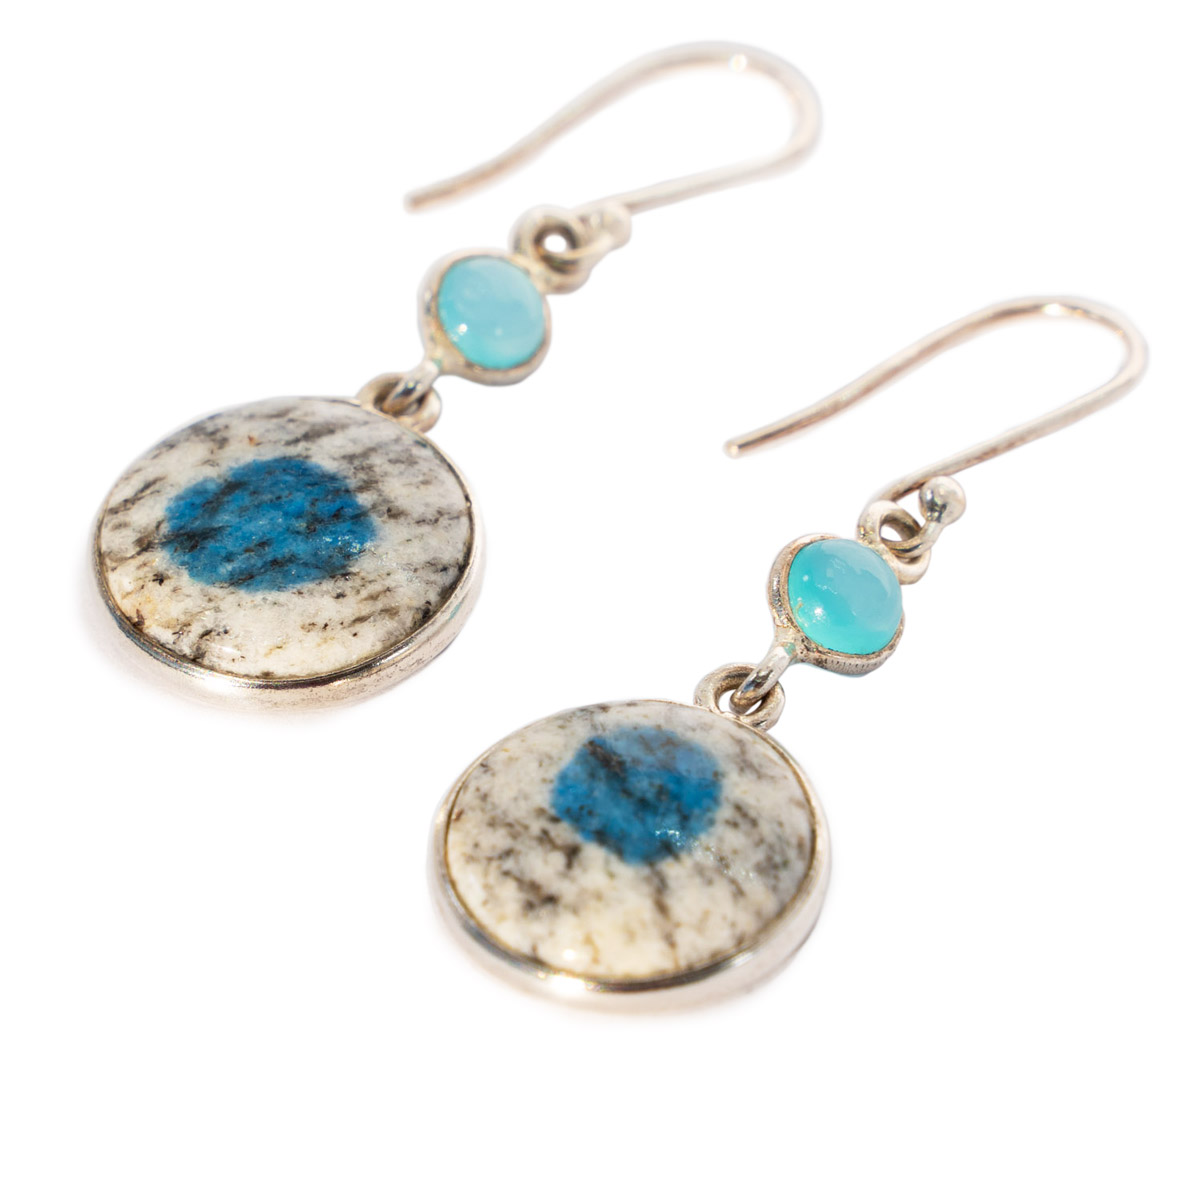 Sri Avinash Infused™ 14.59cts K2 Jasper (Azurite in Quartz) & Chalcedony Earrings in Sterling Silver - Lightness & Joy Infusion